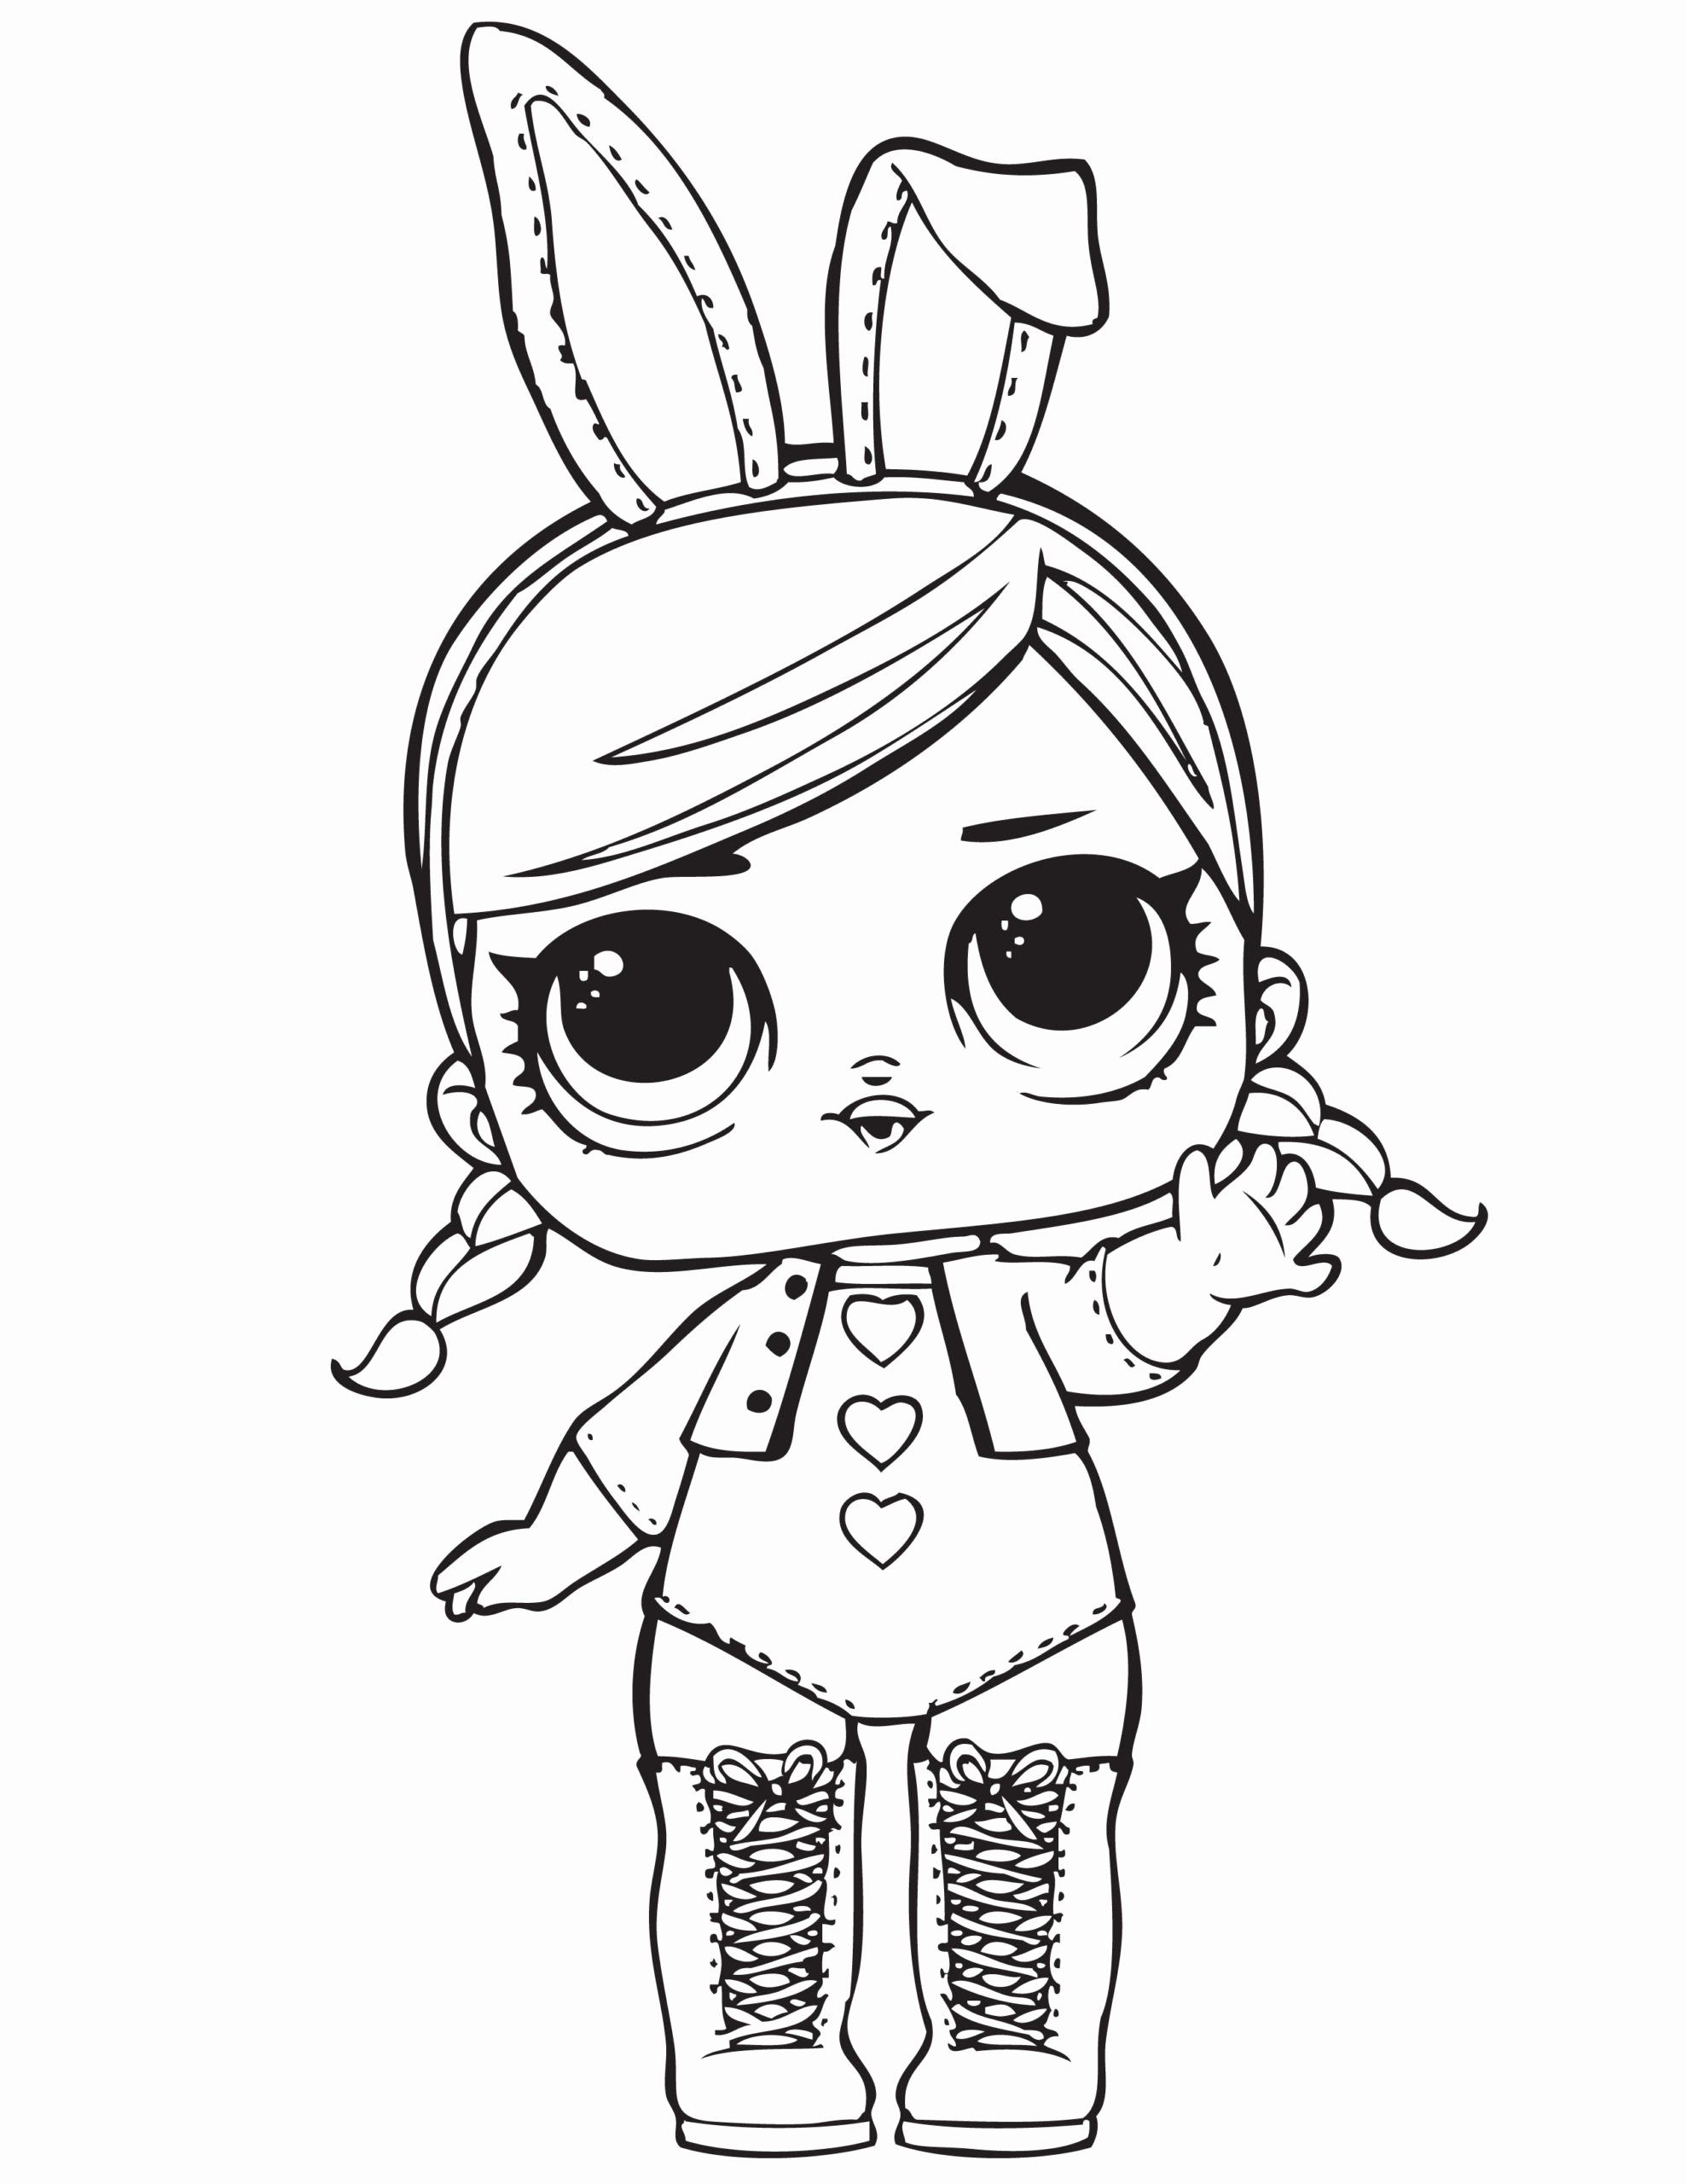 Tinkerbell Christmas Coloring Pages New Coloring Pages Pin By Banndit1 Coloring Lol Dolls Coloriage Lapin Coloriage Peppa Pig Poupees Lol